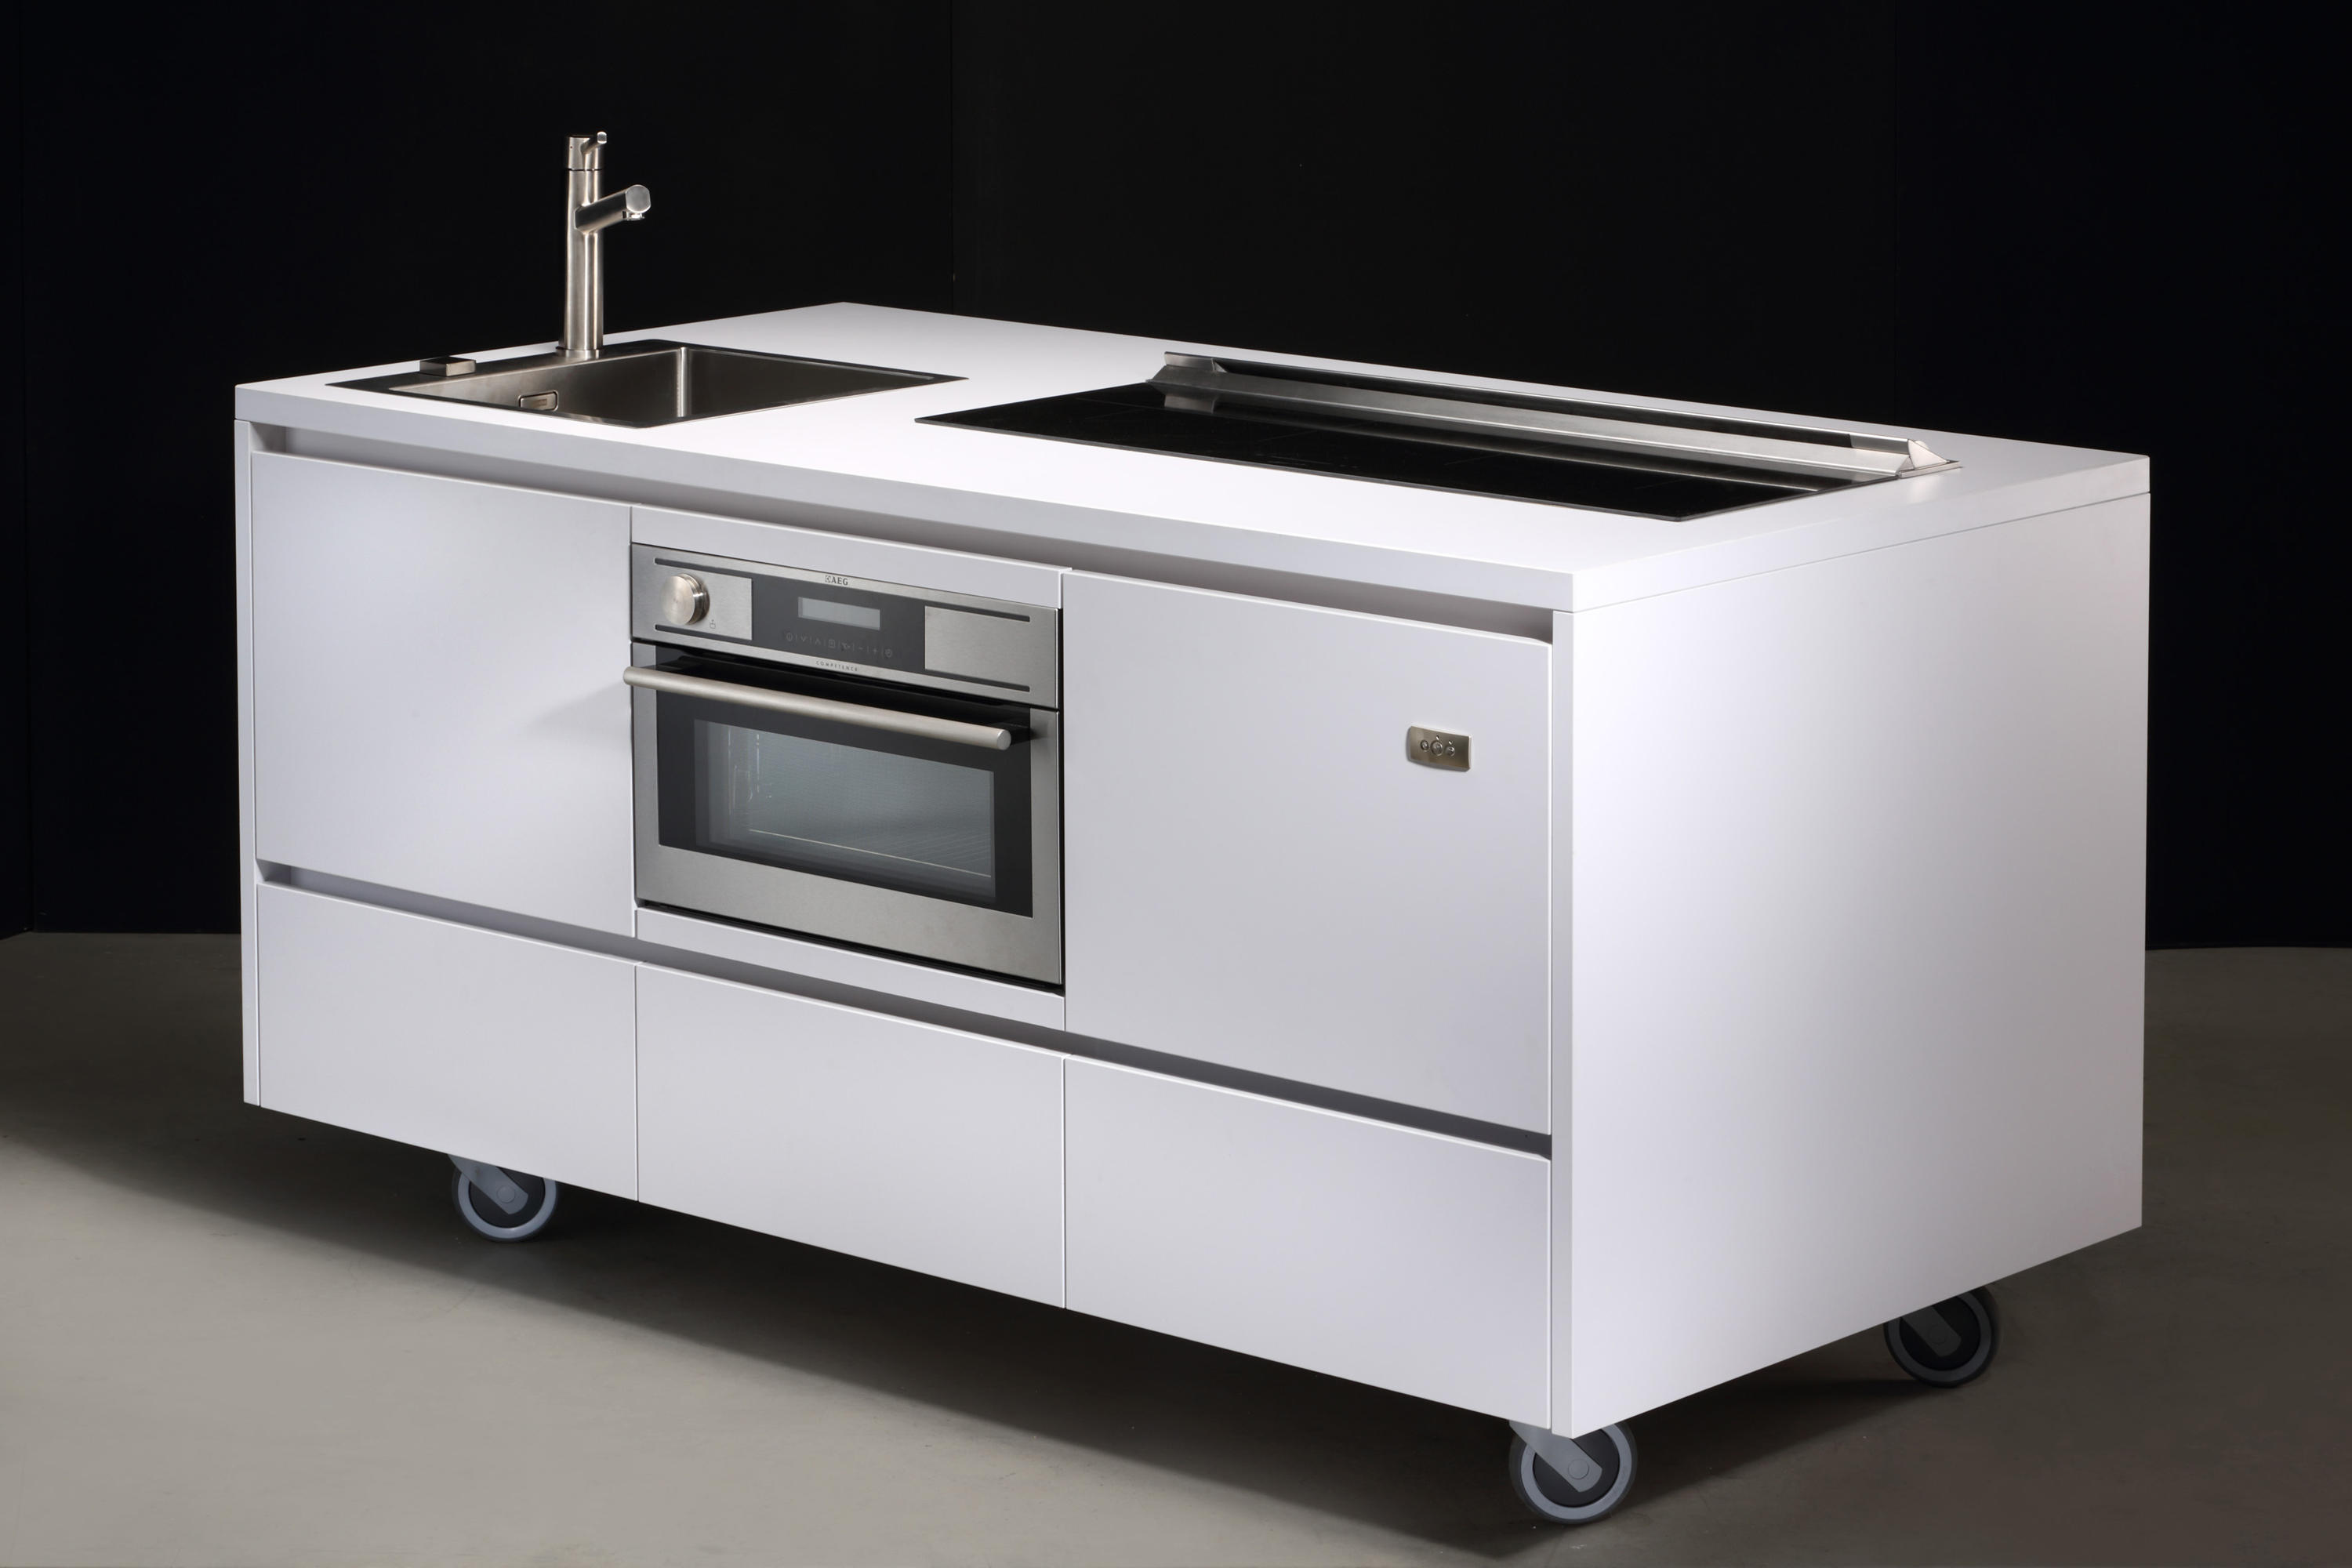 mobile kitchen units - high quality designer mobile kitchen